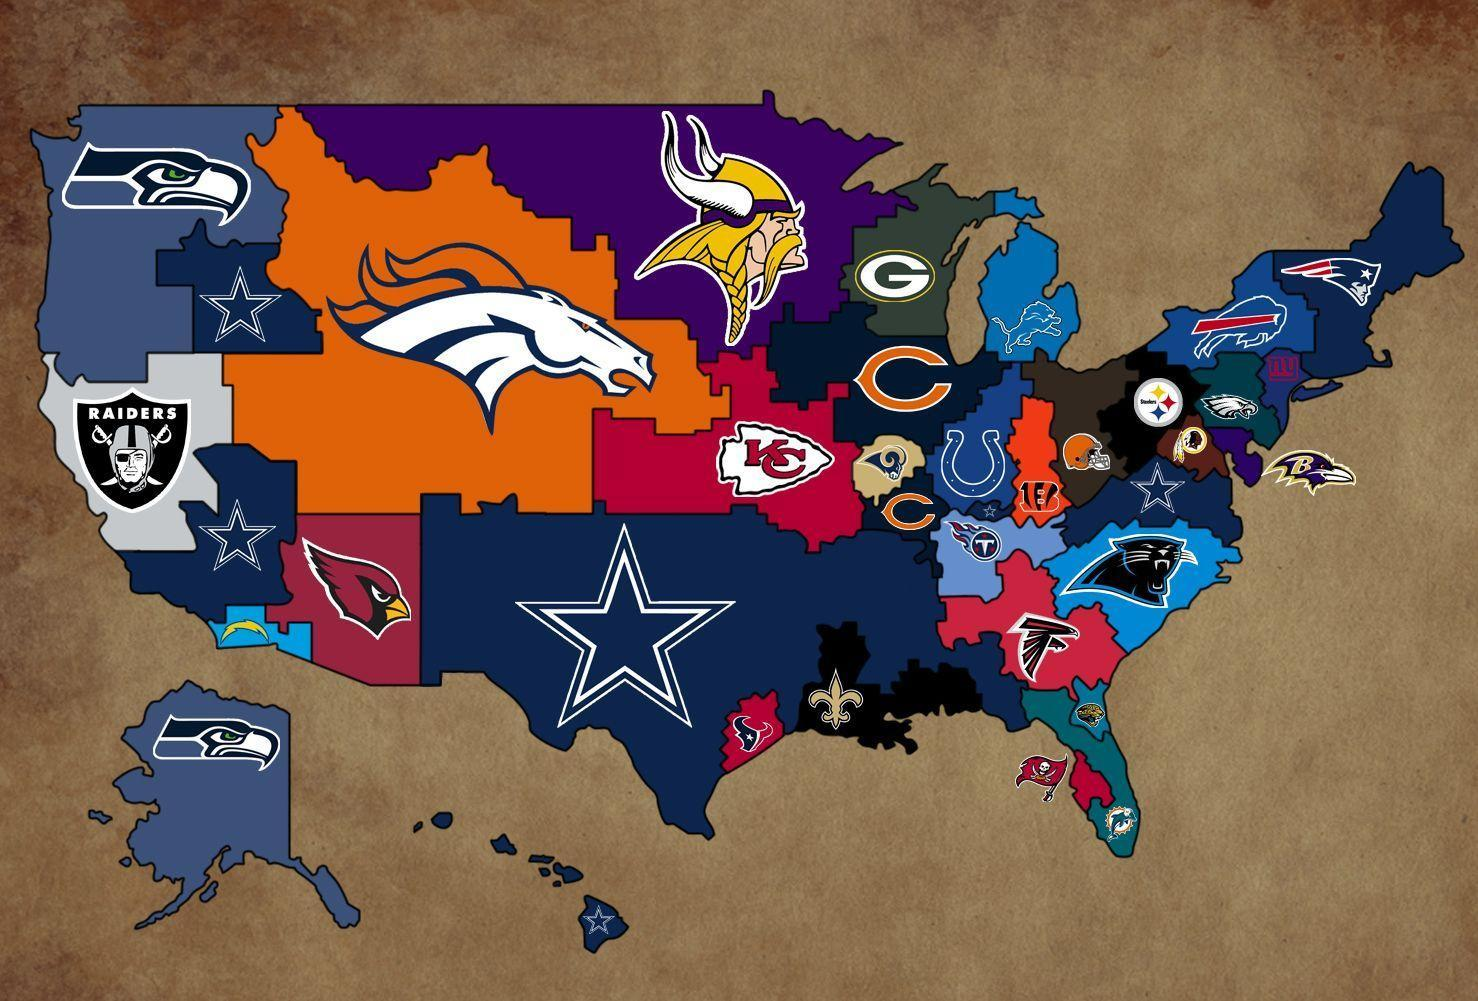 nfl teams wallpaper  Nfl Teams Wallpapers 2017 - Wallpaper Cave